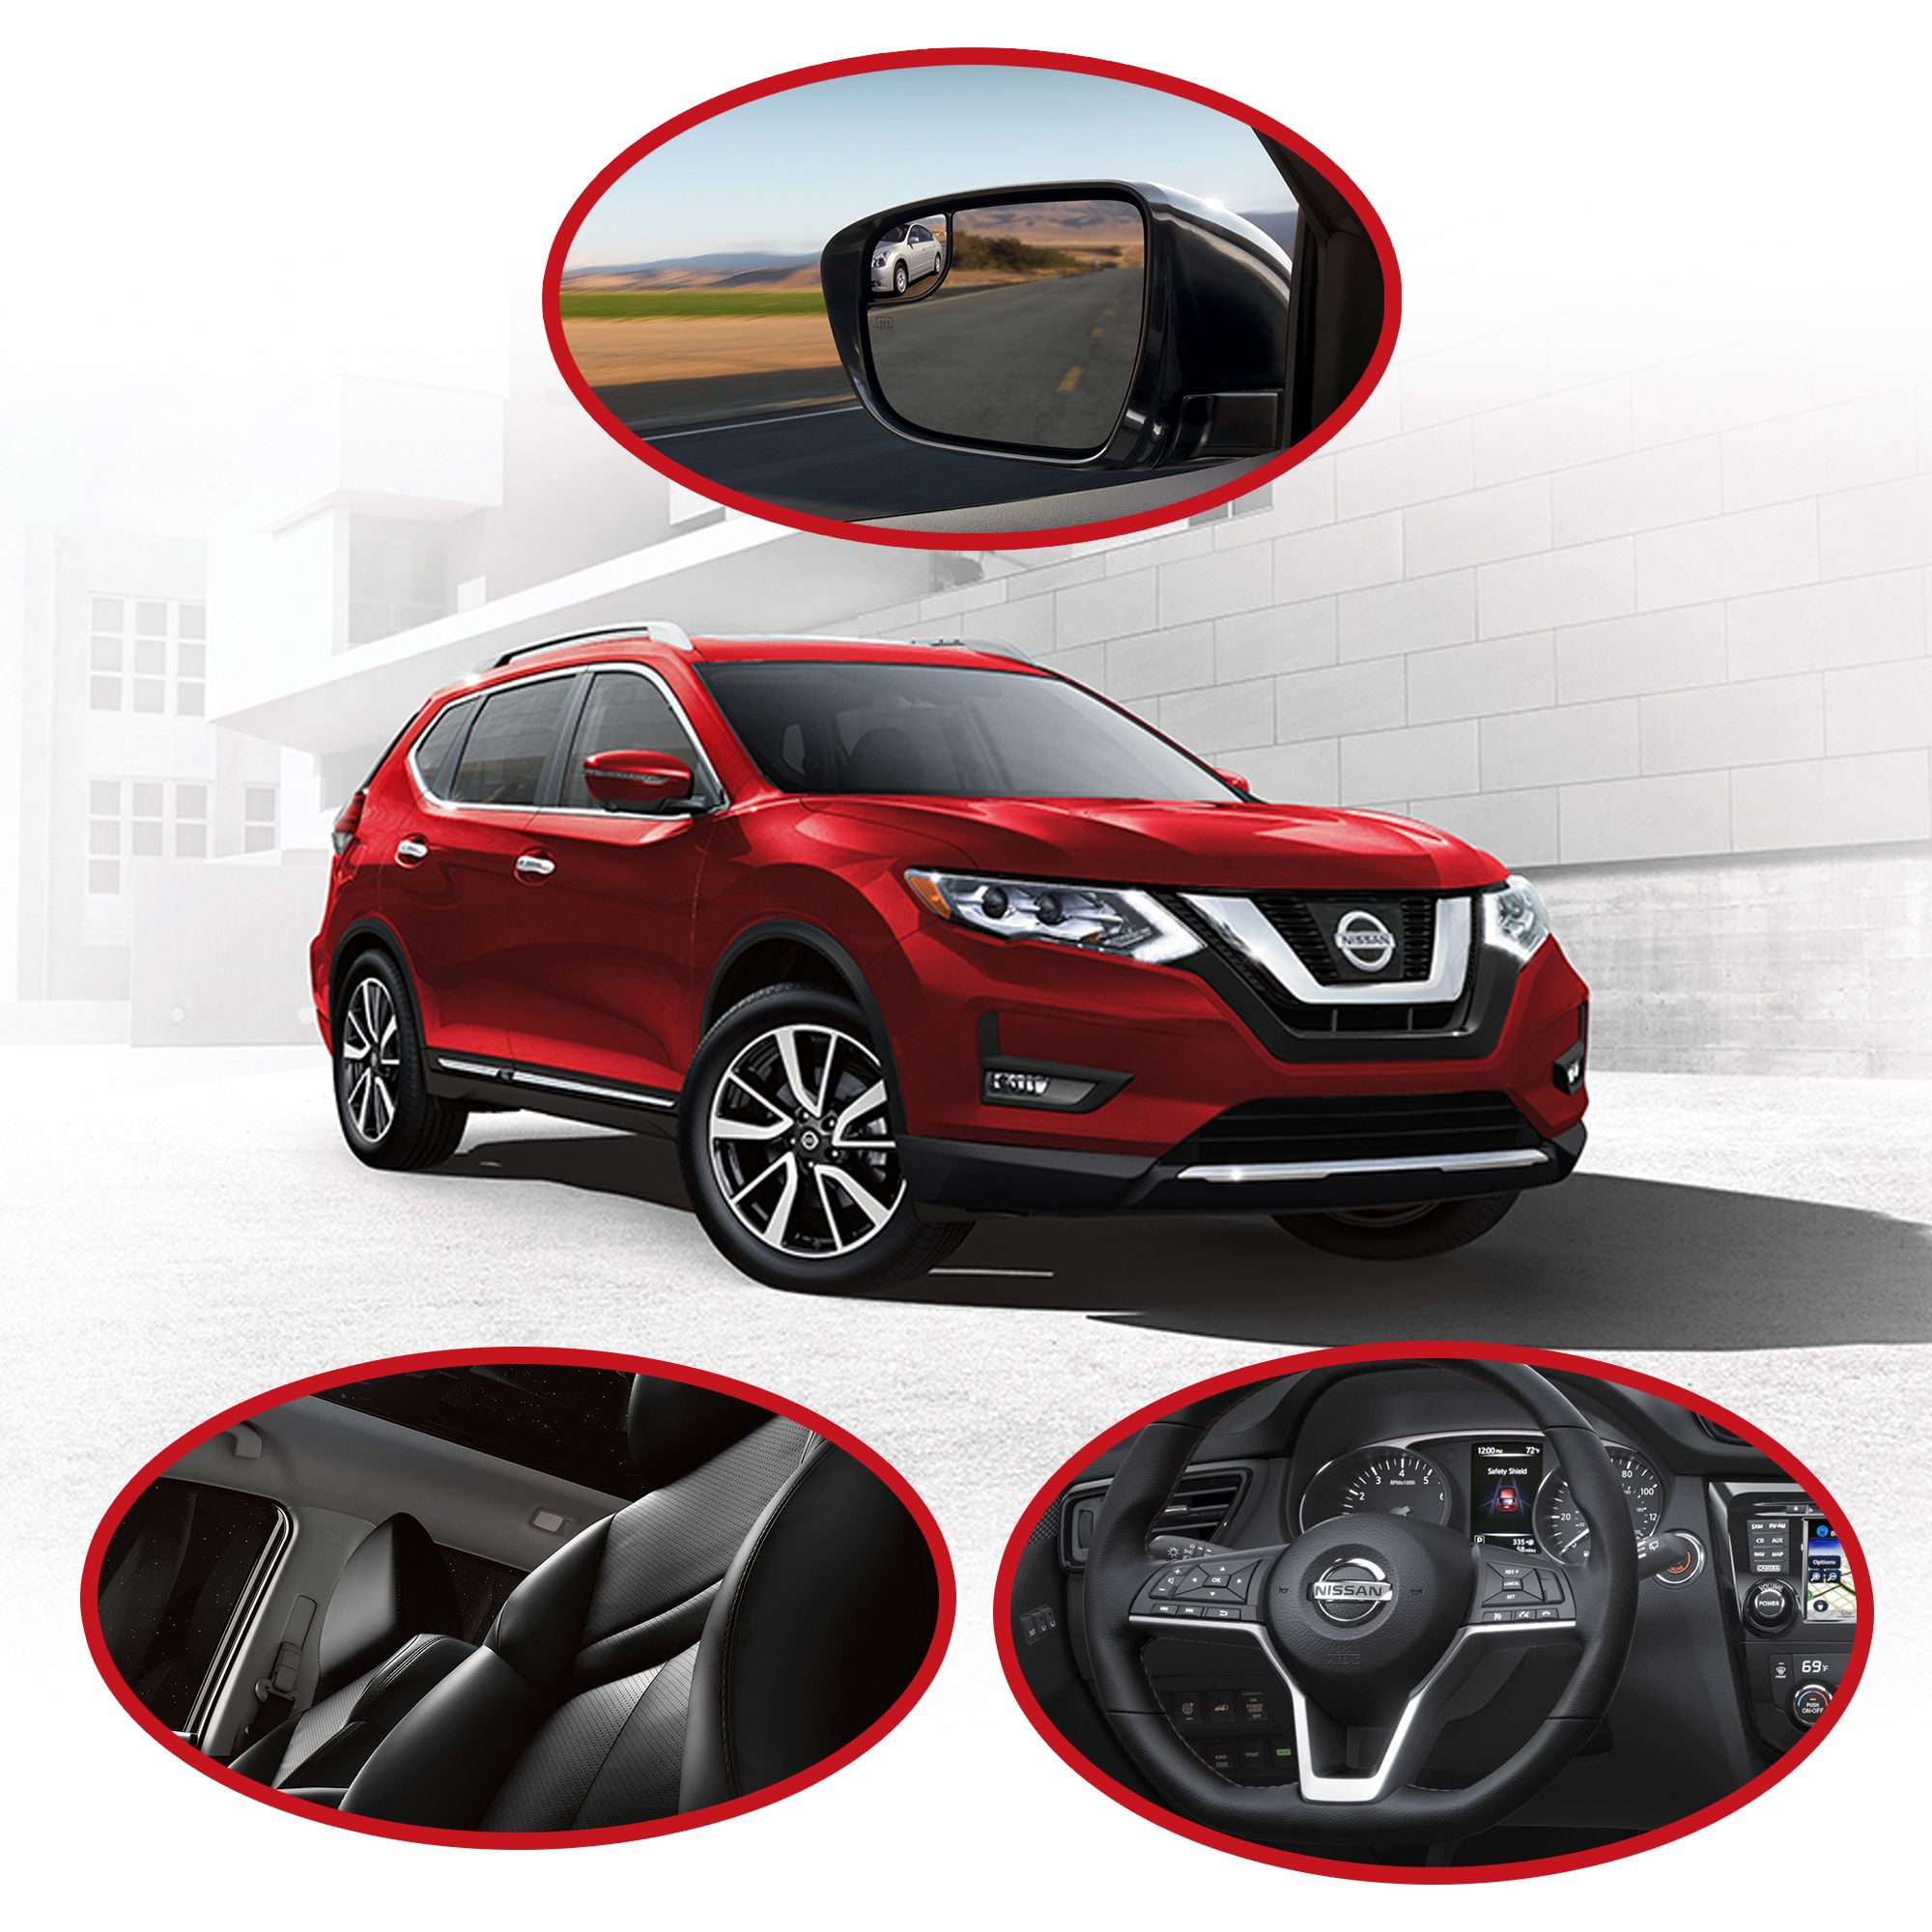 Which available 2017 Nissan Rogue features will you be